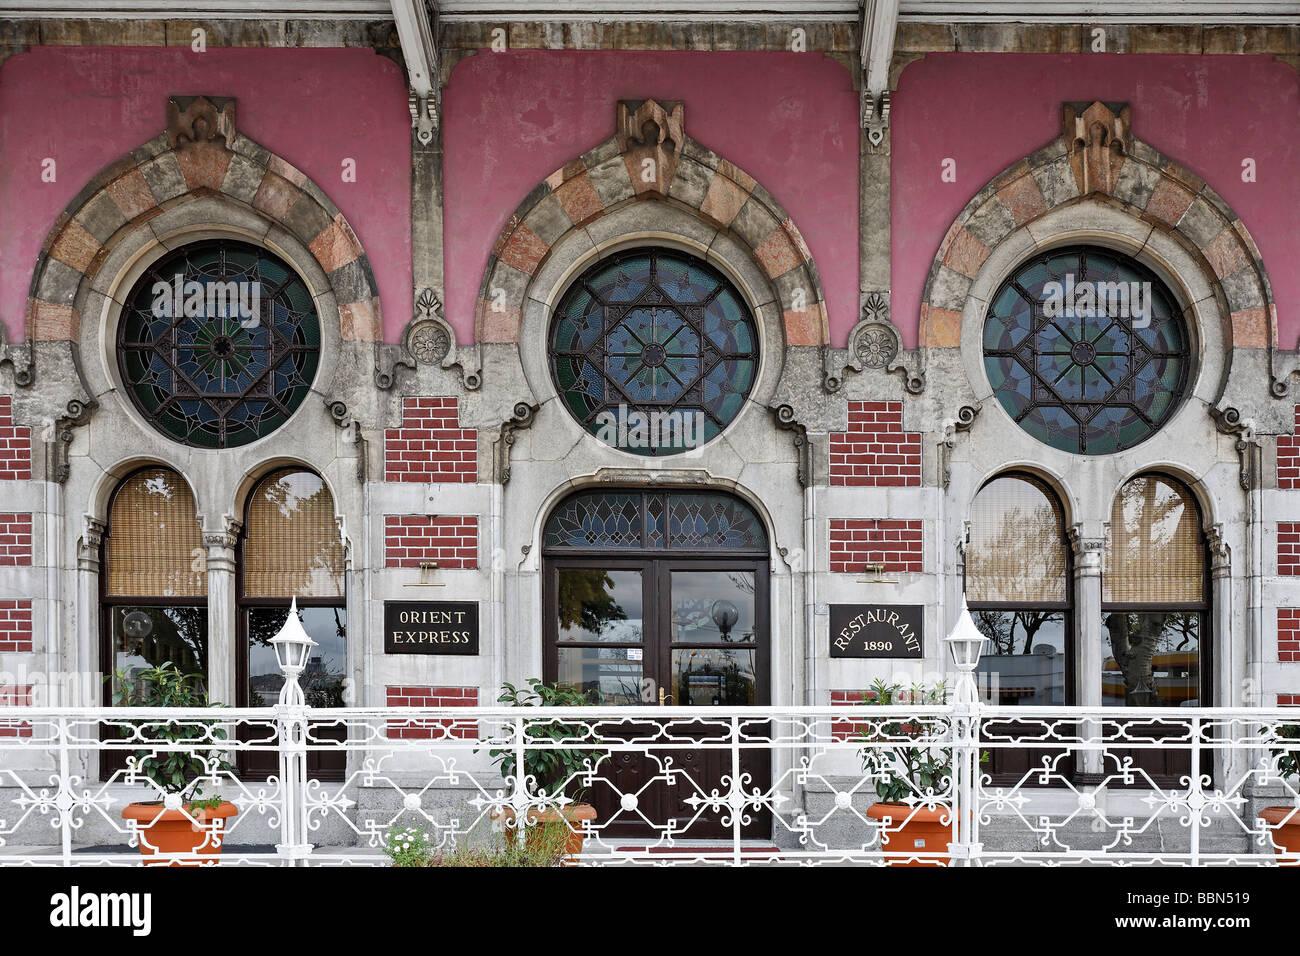 Orient Express Restaurant, historic Sirkeci Train Station, Ottoman art nouveau building, Istanbul, Turkey - Stock Image